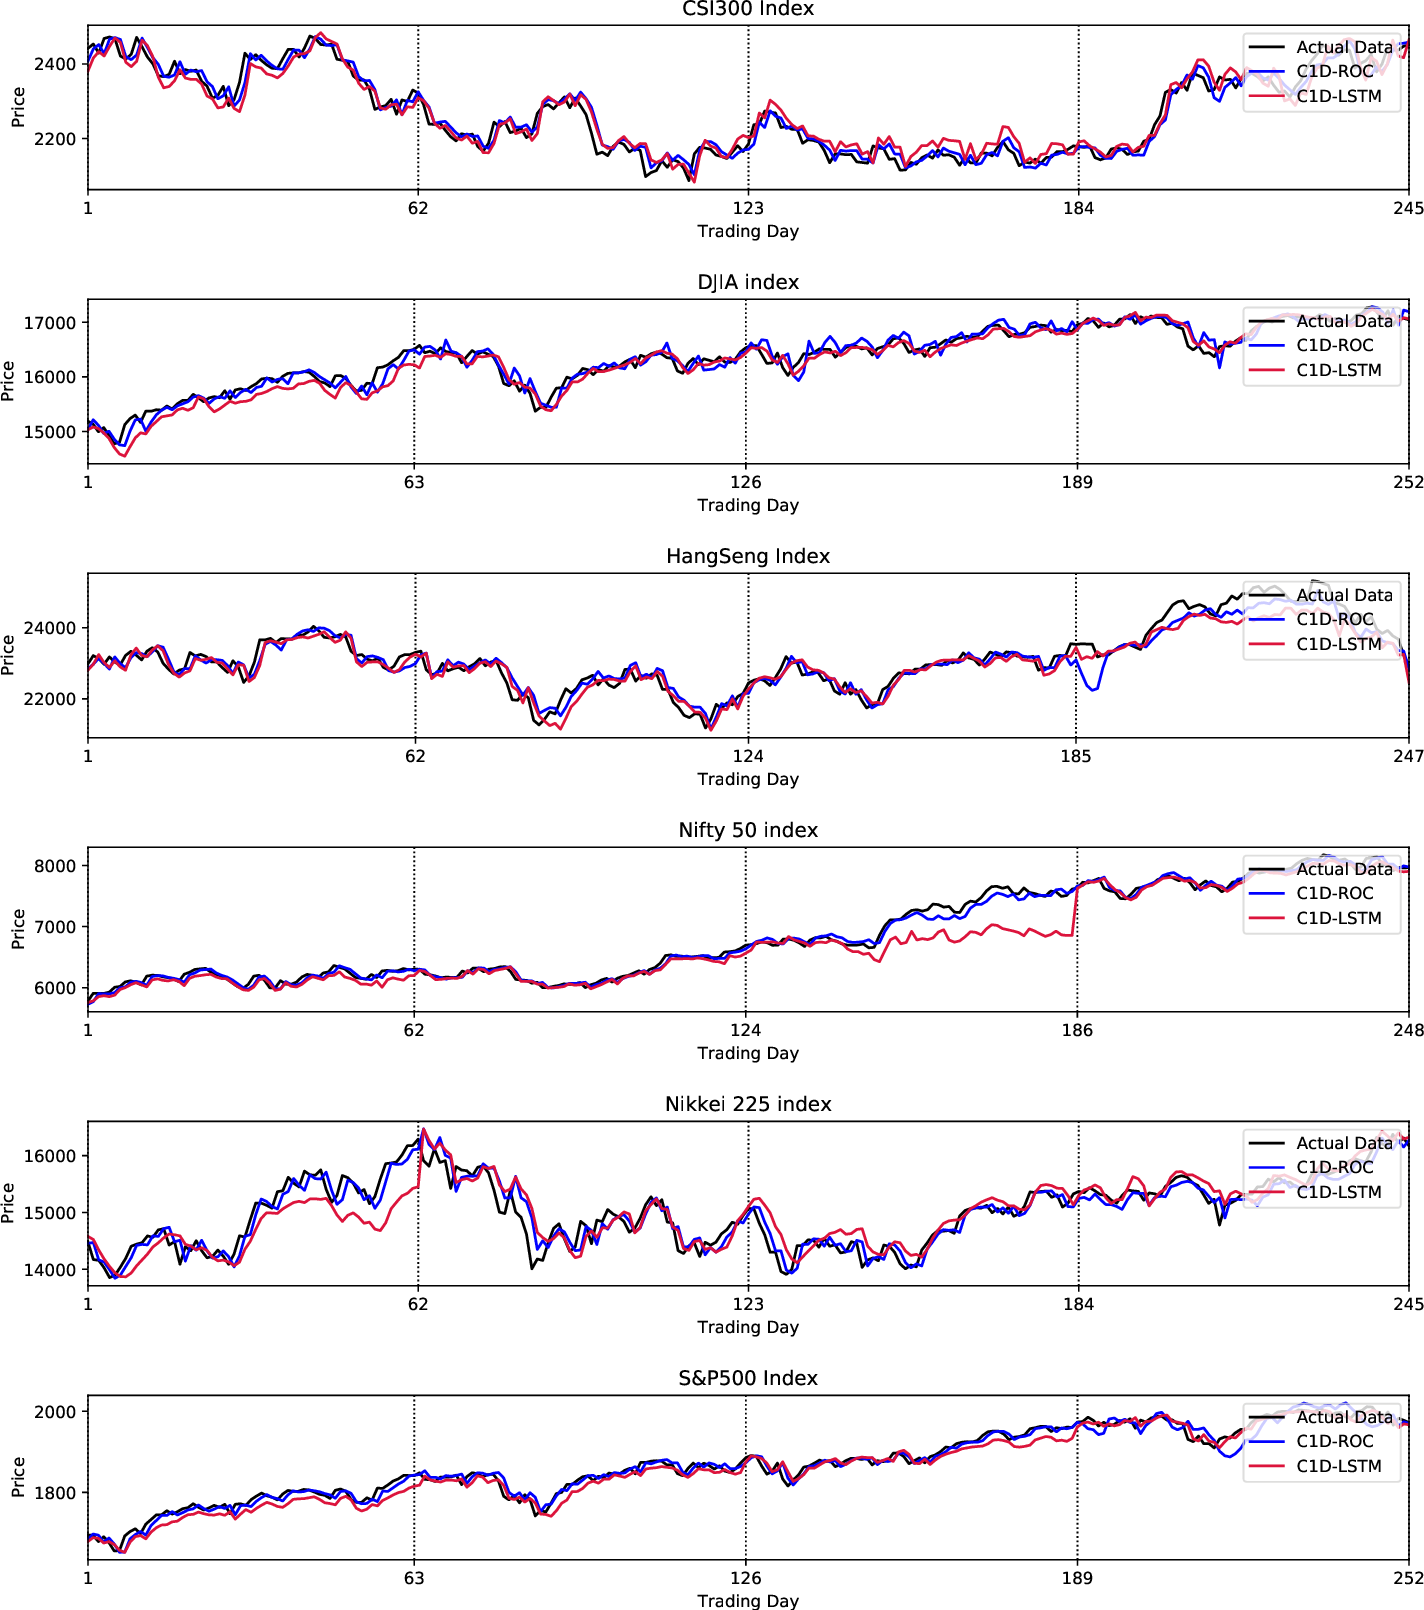 Figure 2 for Stock Prices Prediction using Deep Learning Models